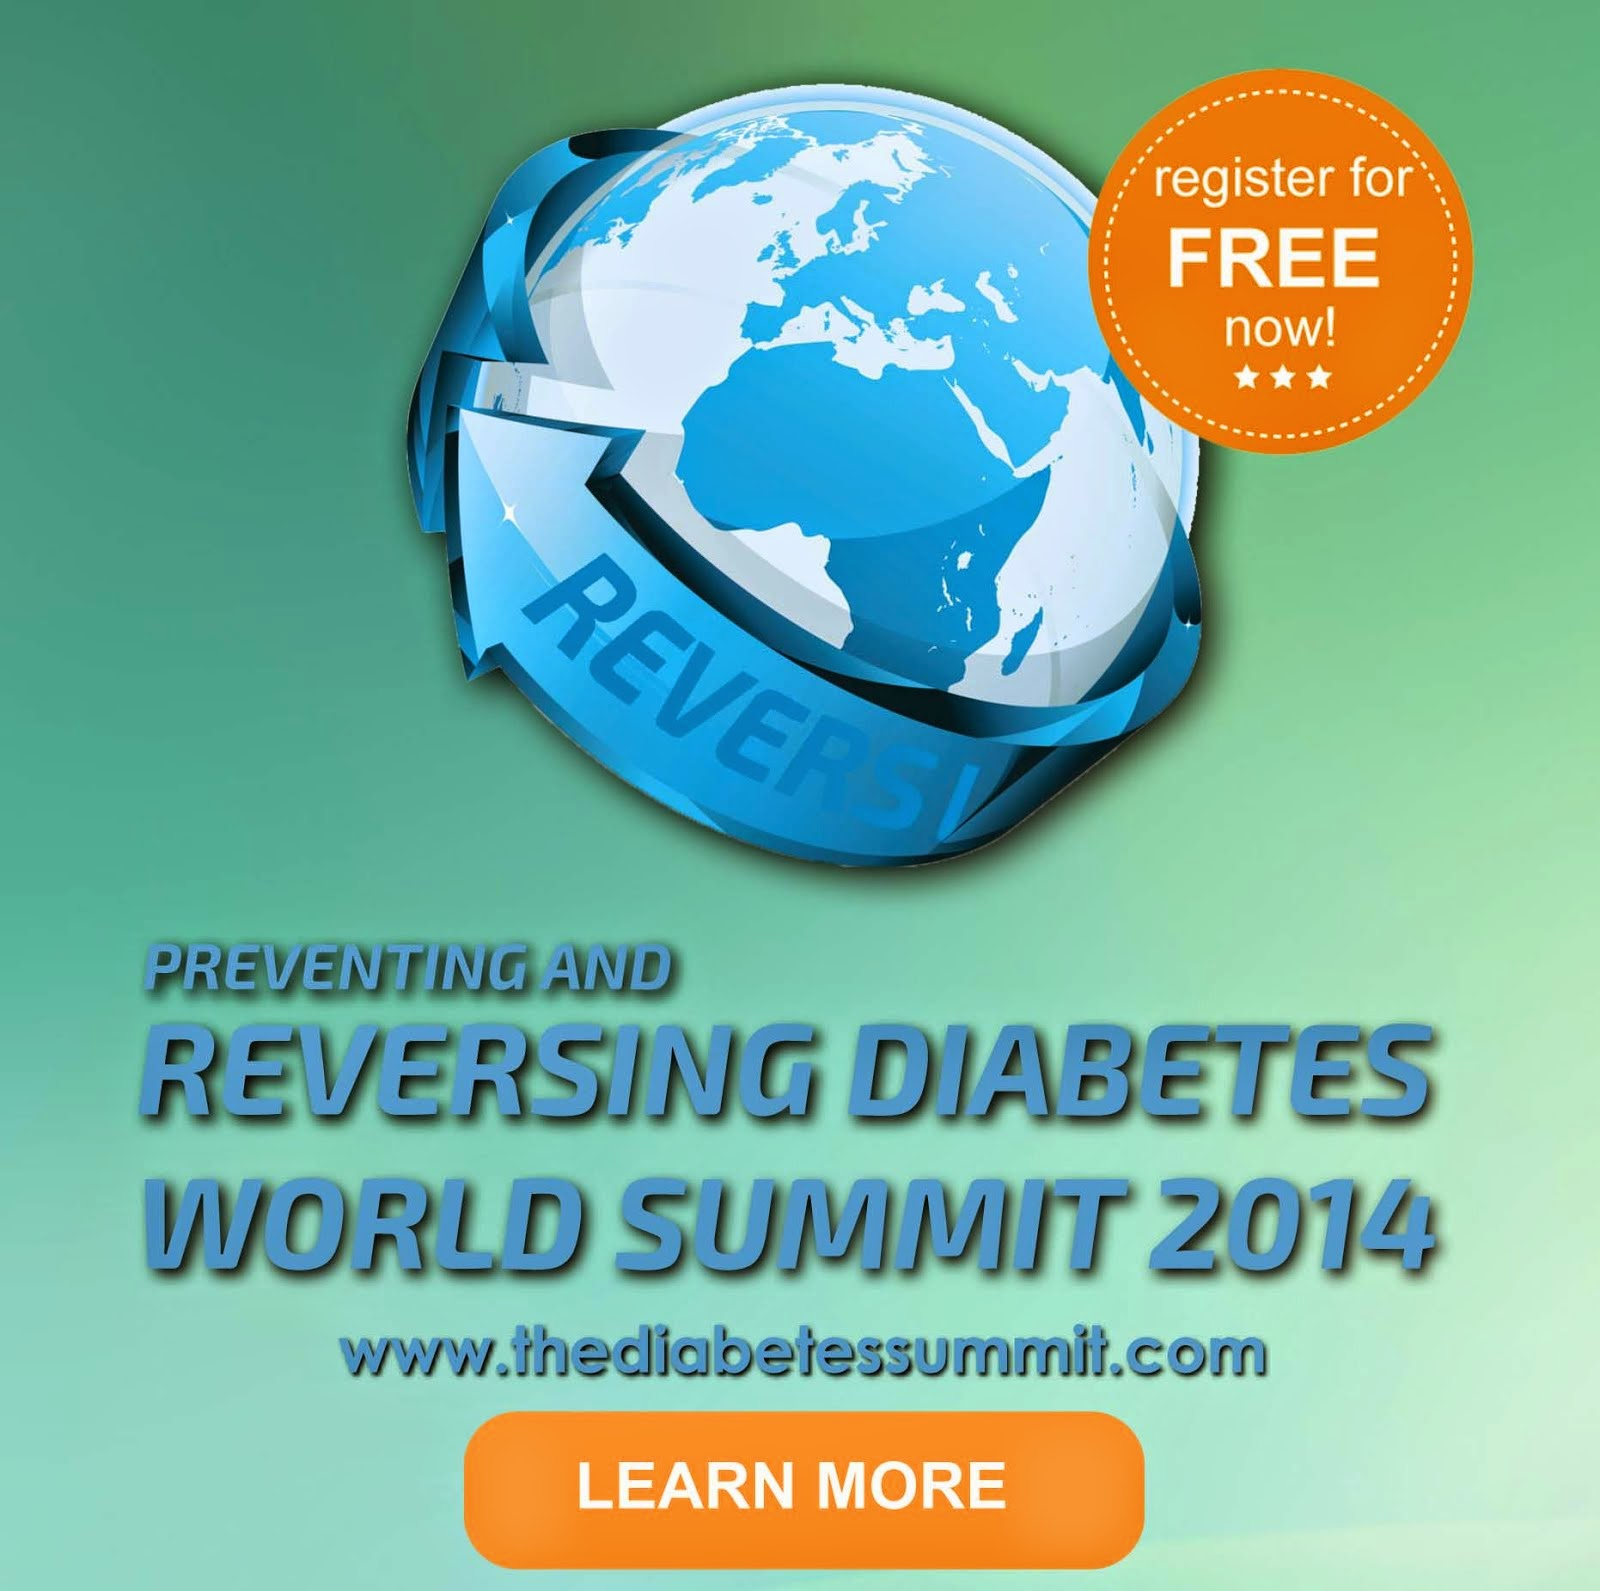 Preventing and Reversing Diabetes World Summit 2014